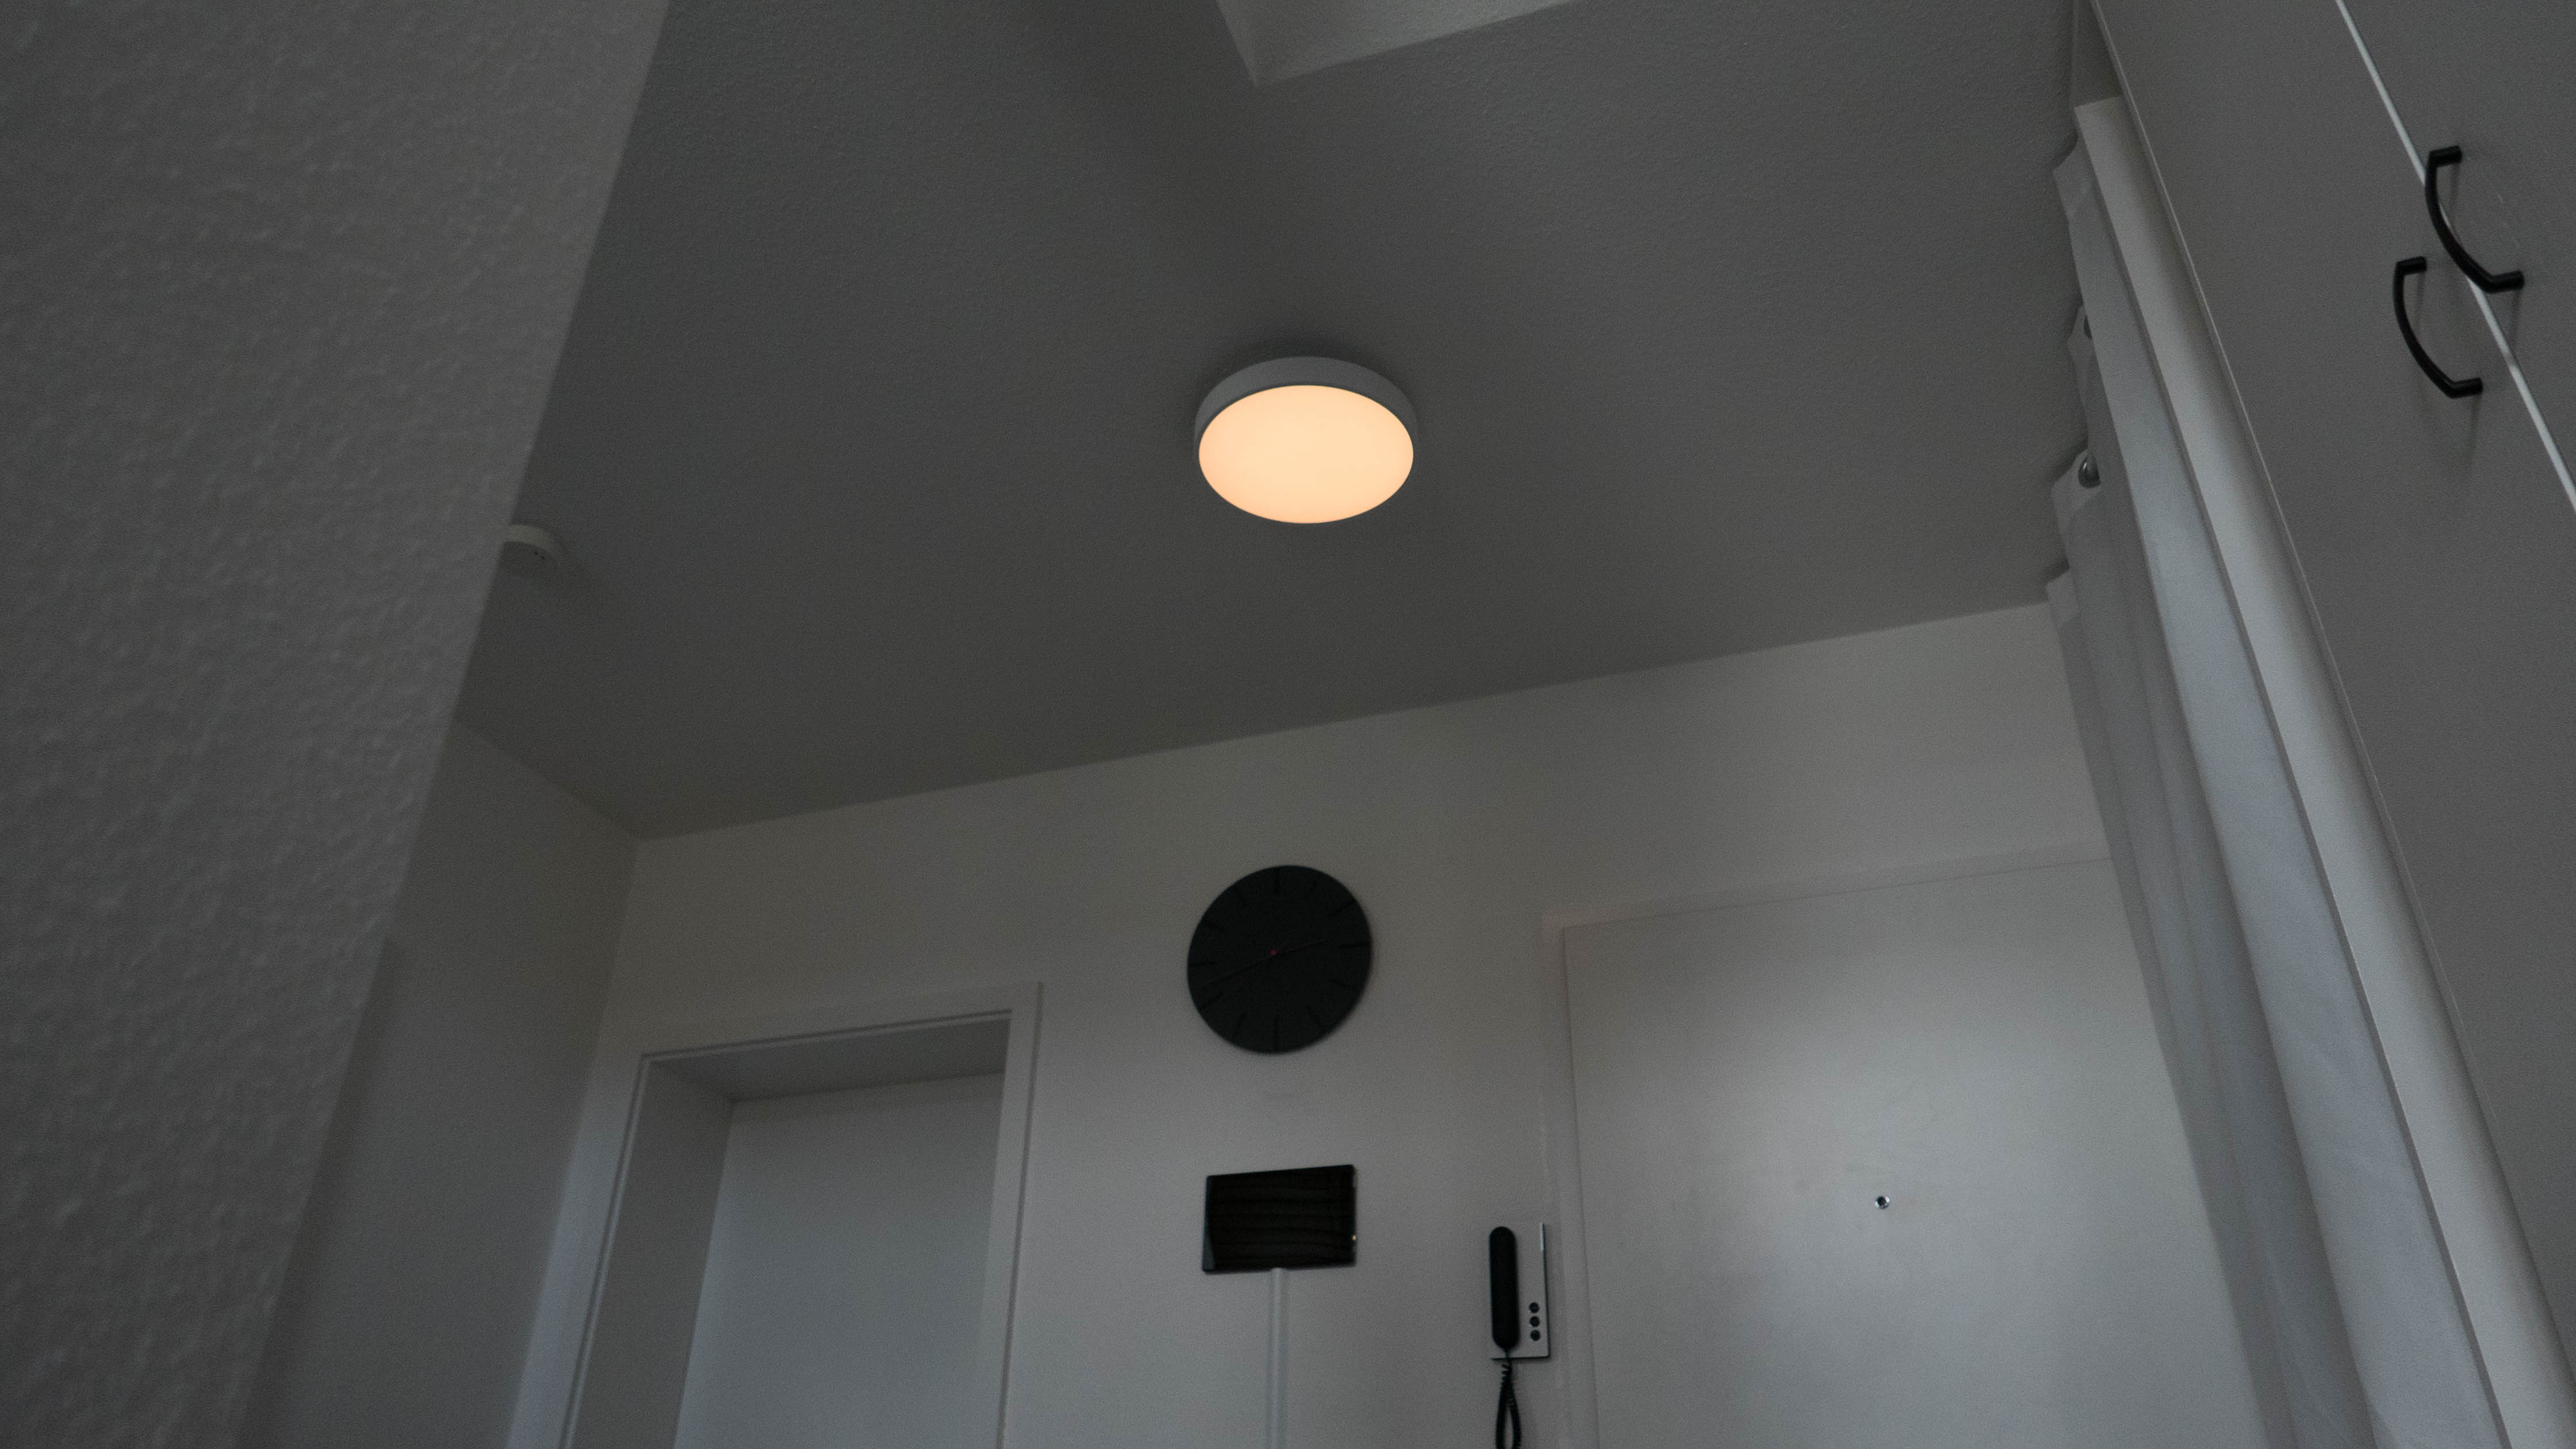 Xiaomi Yeelight LED Ceiling Light Farbtemperatur 7